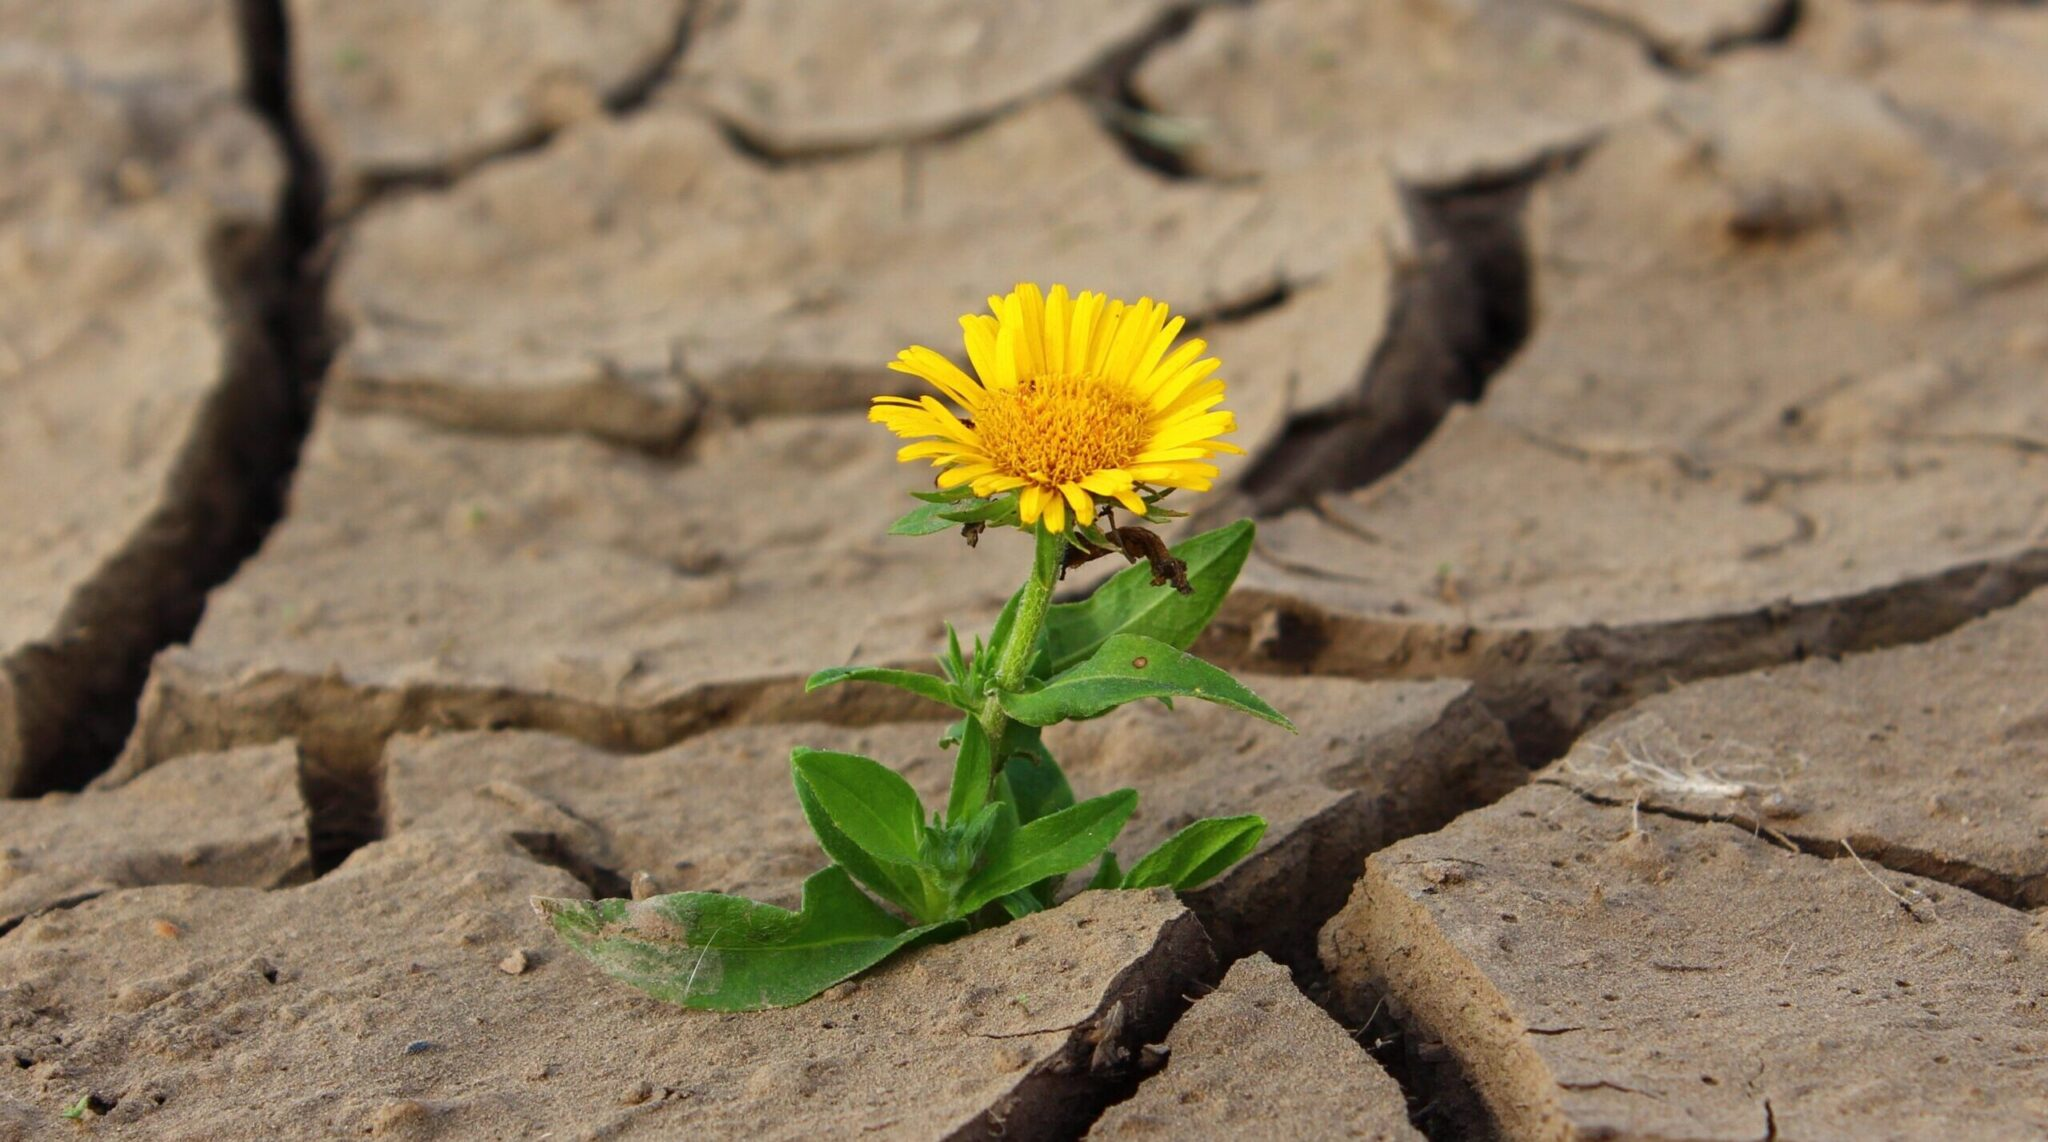 Flower growing through cracked soil, flaws, cracks, beauty